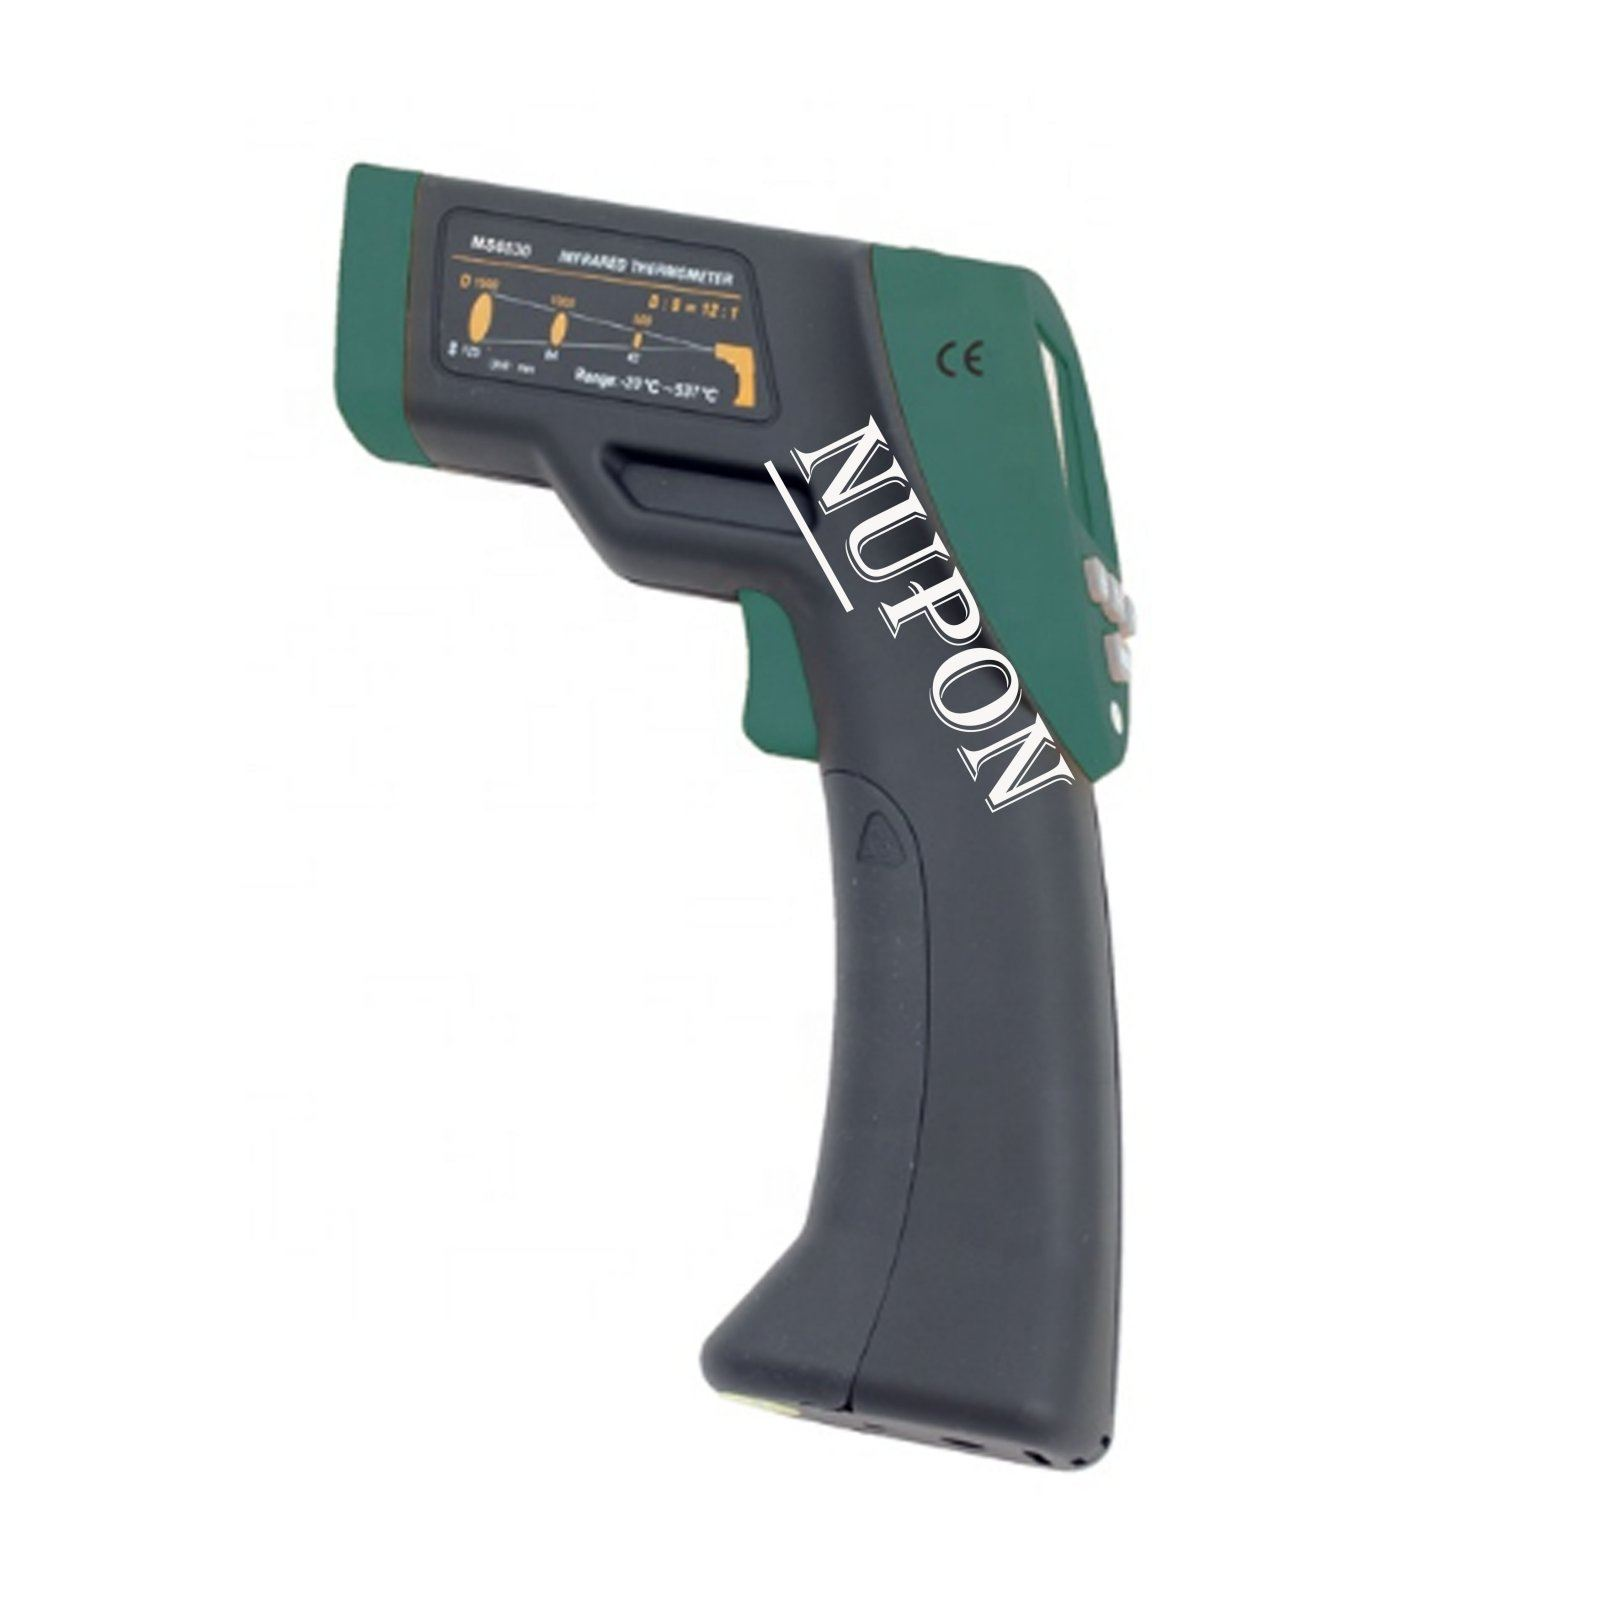 Infrared Thermometer Digital For Industrial Usuage 537 Degree C